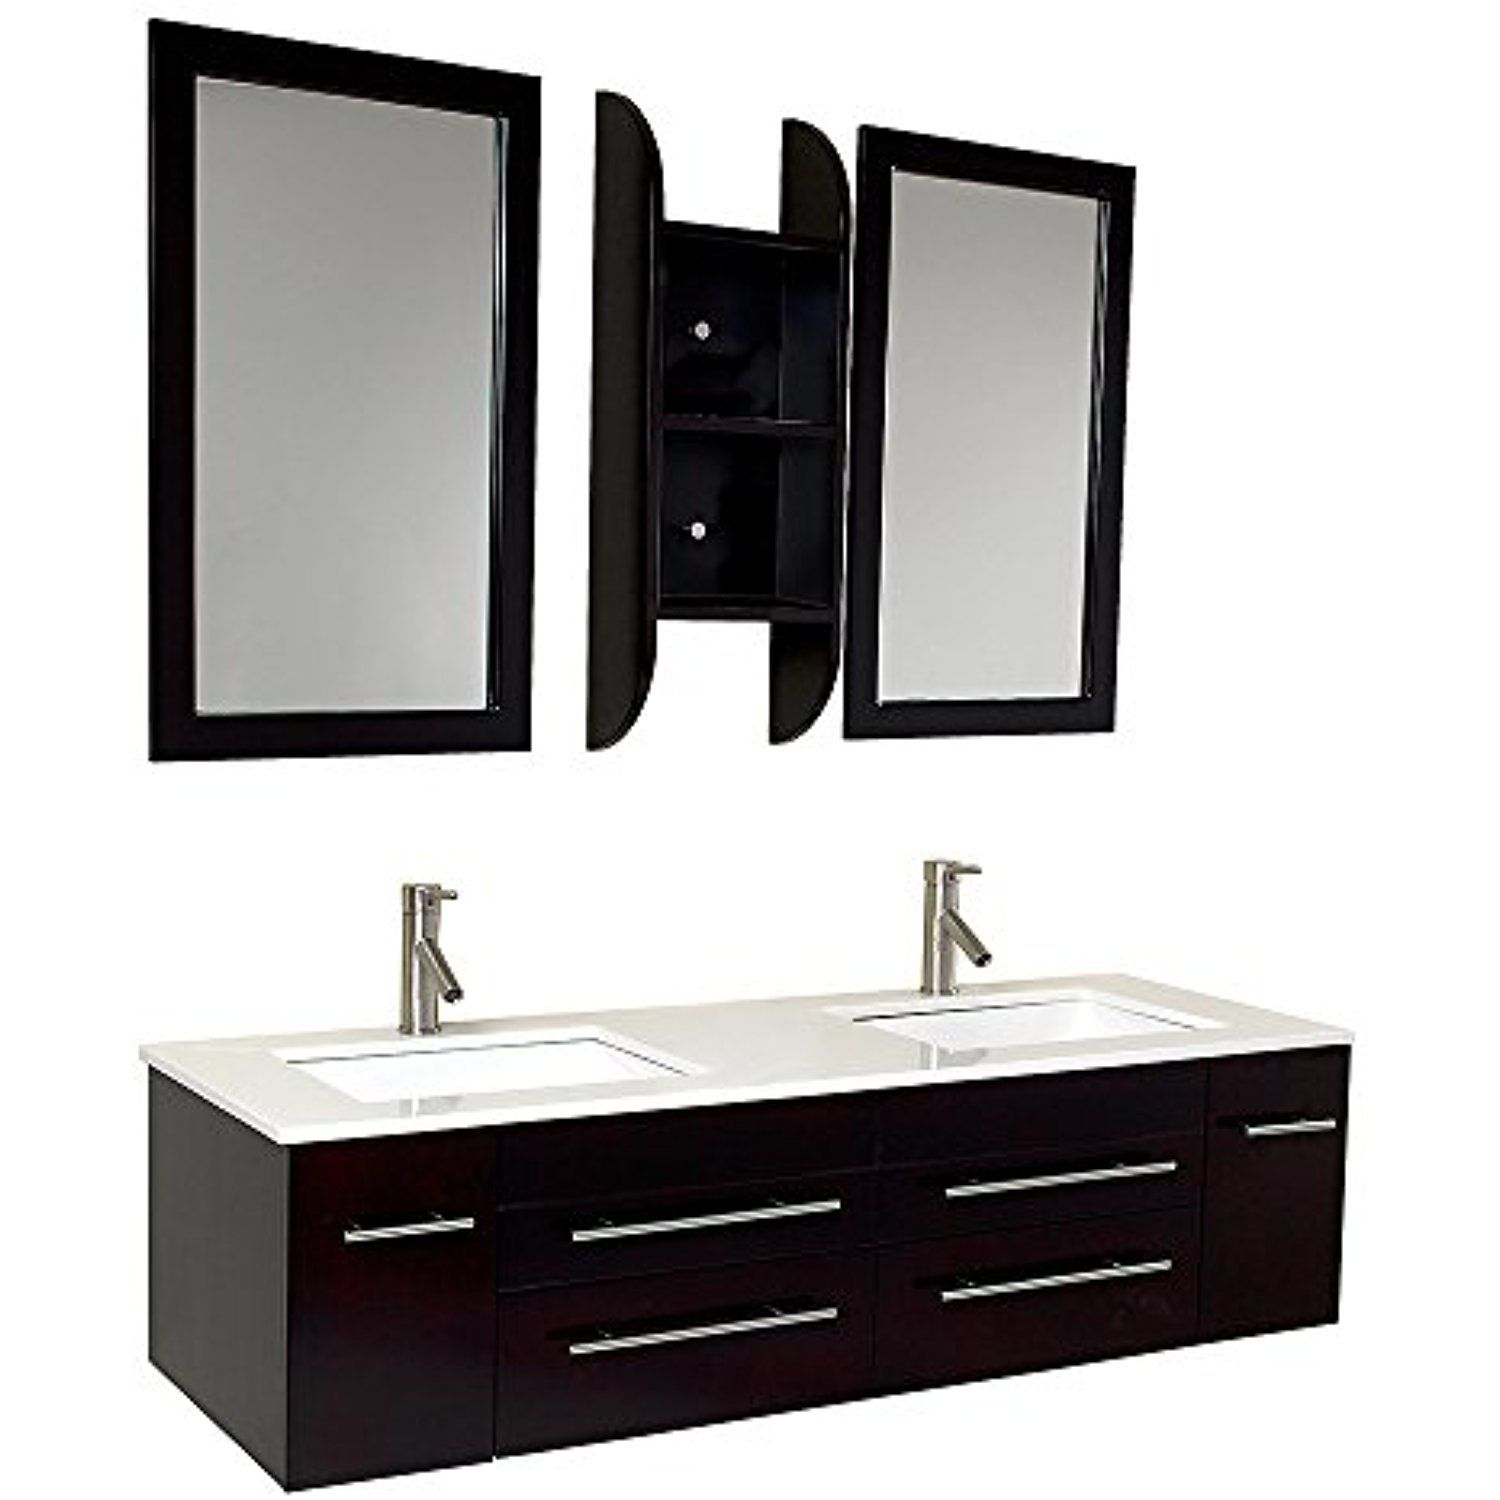 Fresca Bath Fvn6119uns Bellezza Double Vanity Sink Espresso Check Out This Great